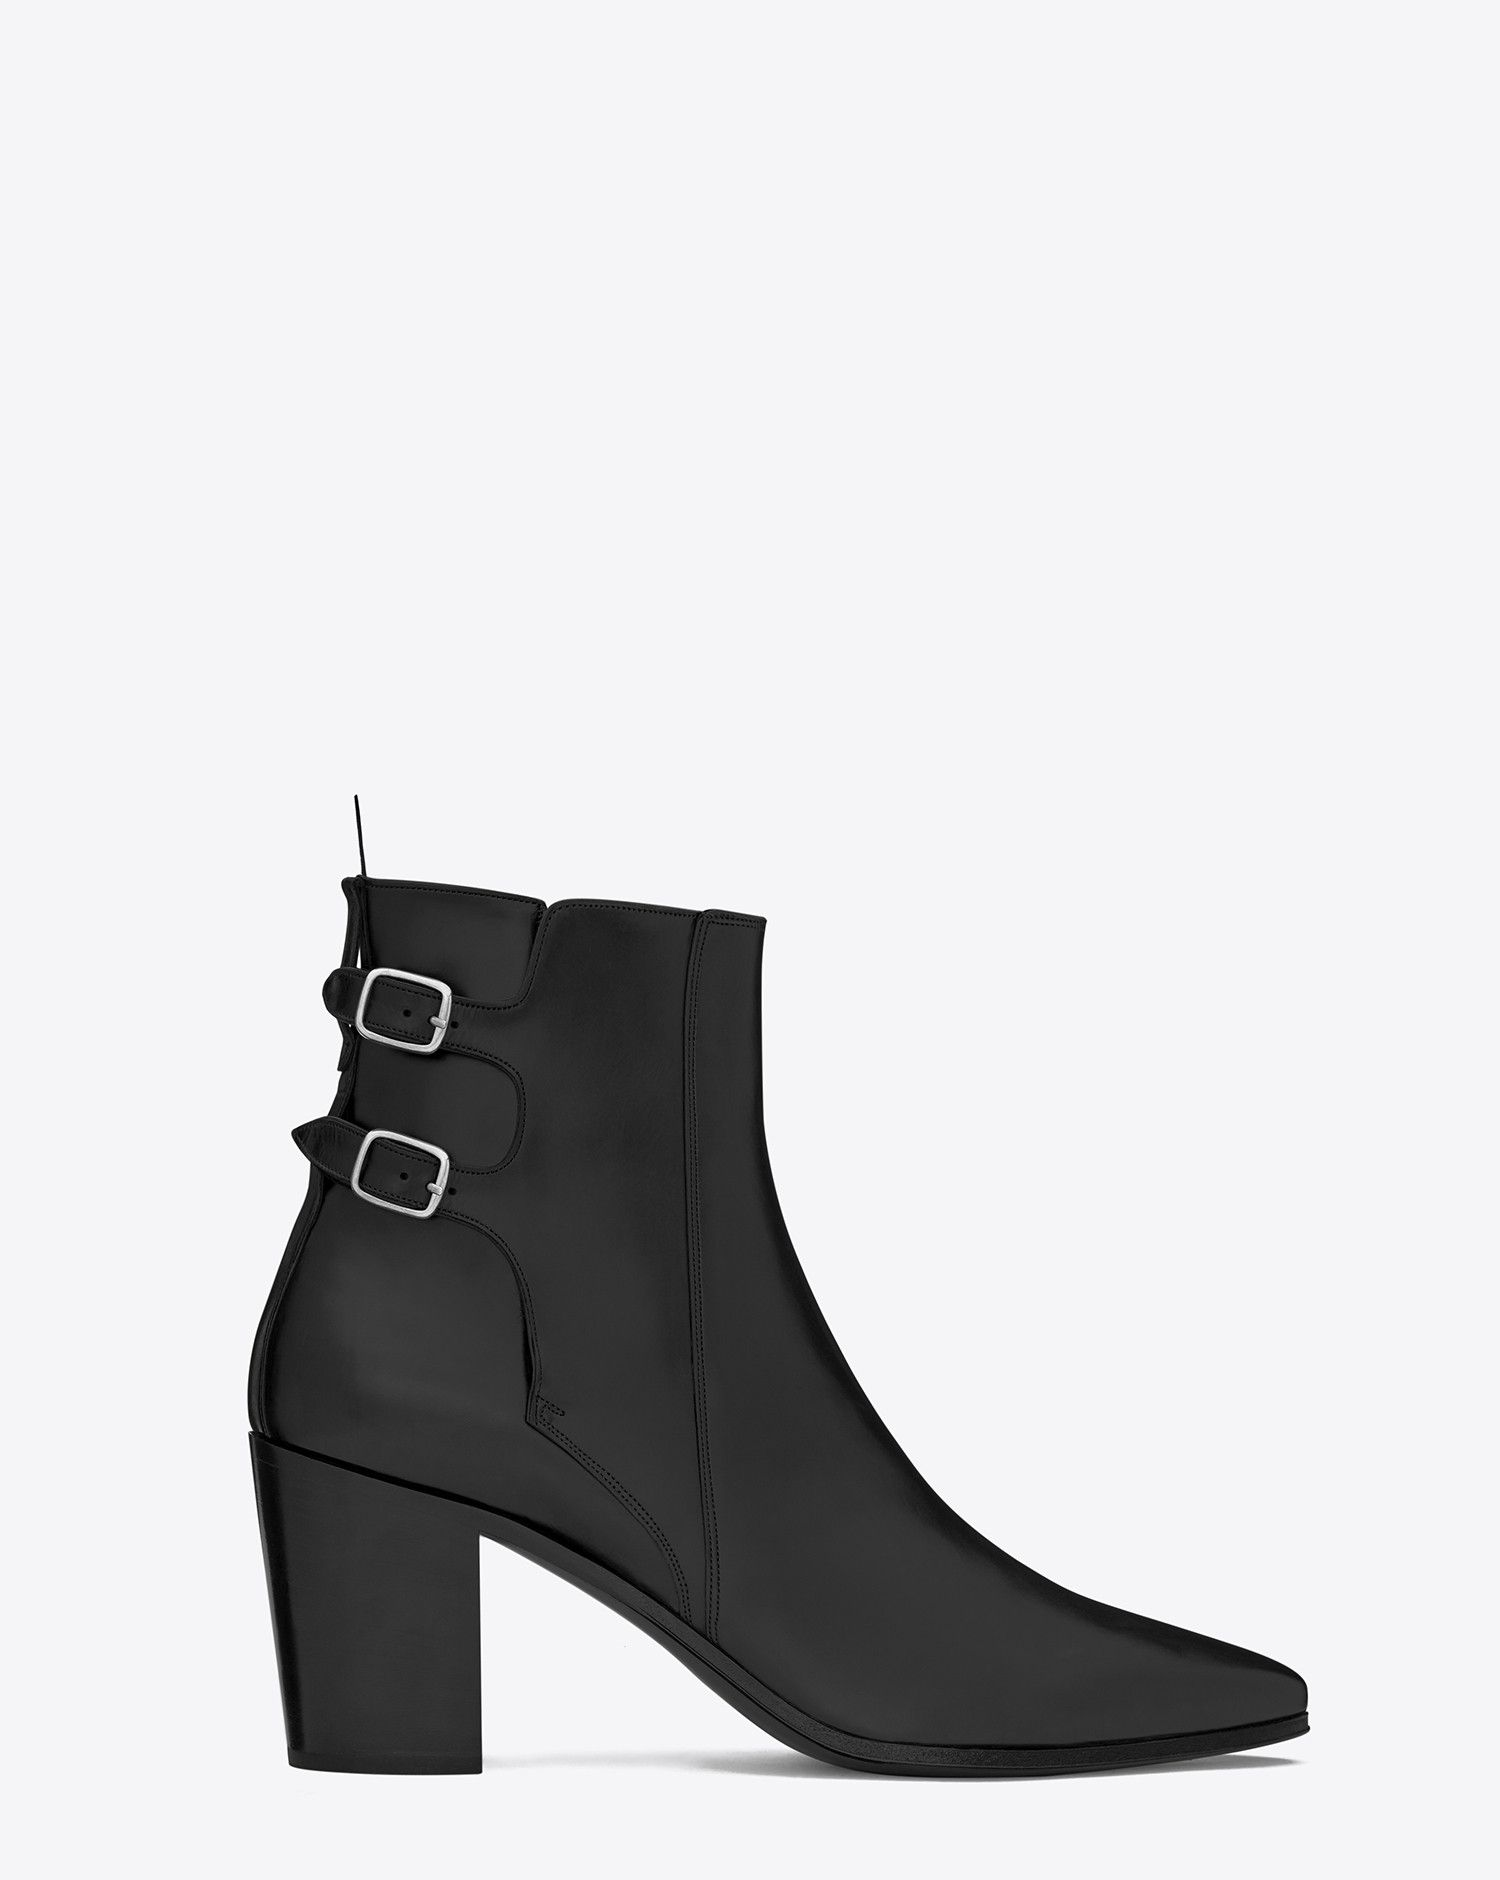 1d166cc24ecc Saint Laurent FRENCH 85 Double Buckle ANKLE BOOT IN BLACK LEATHER ...